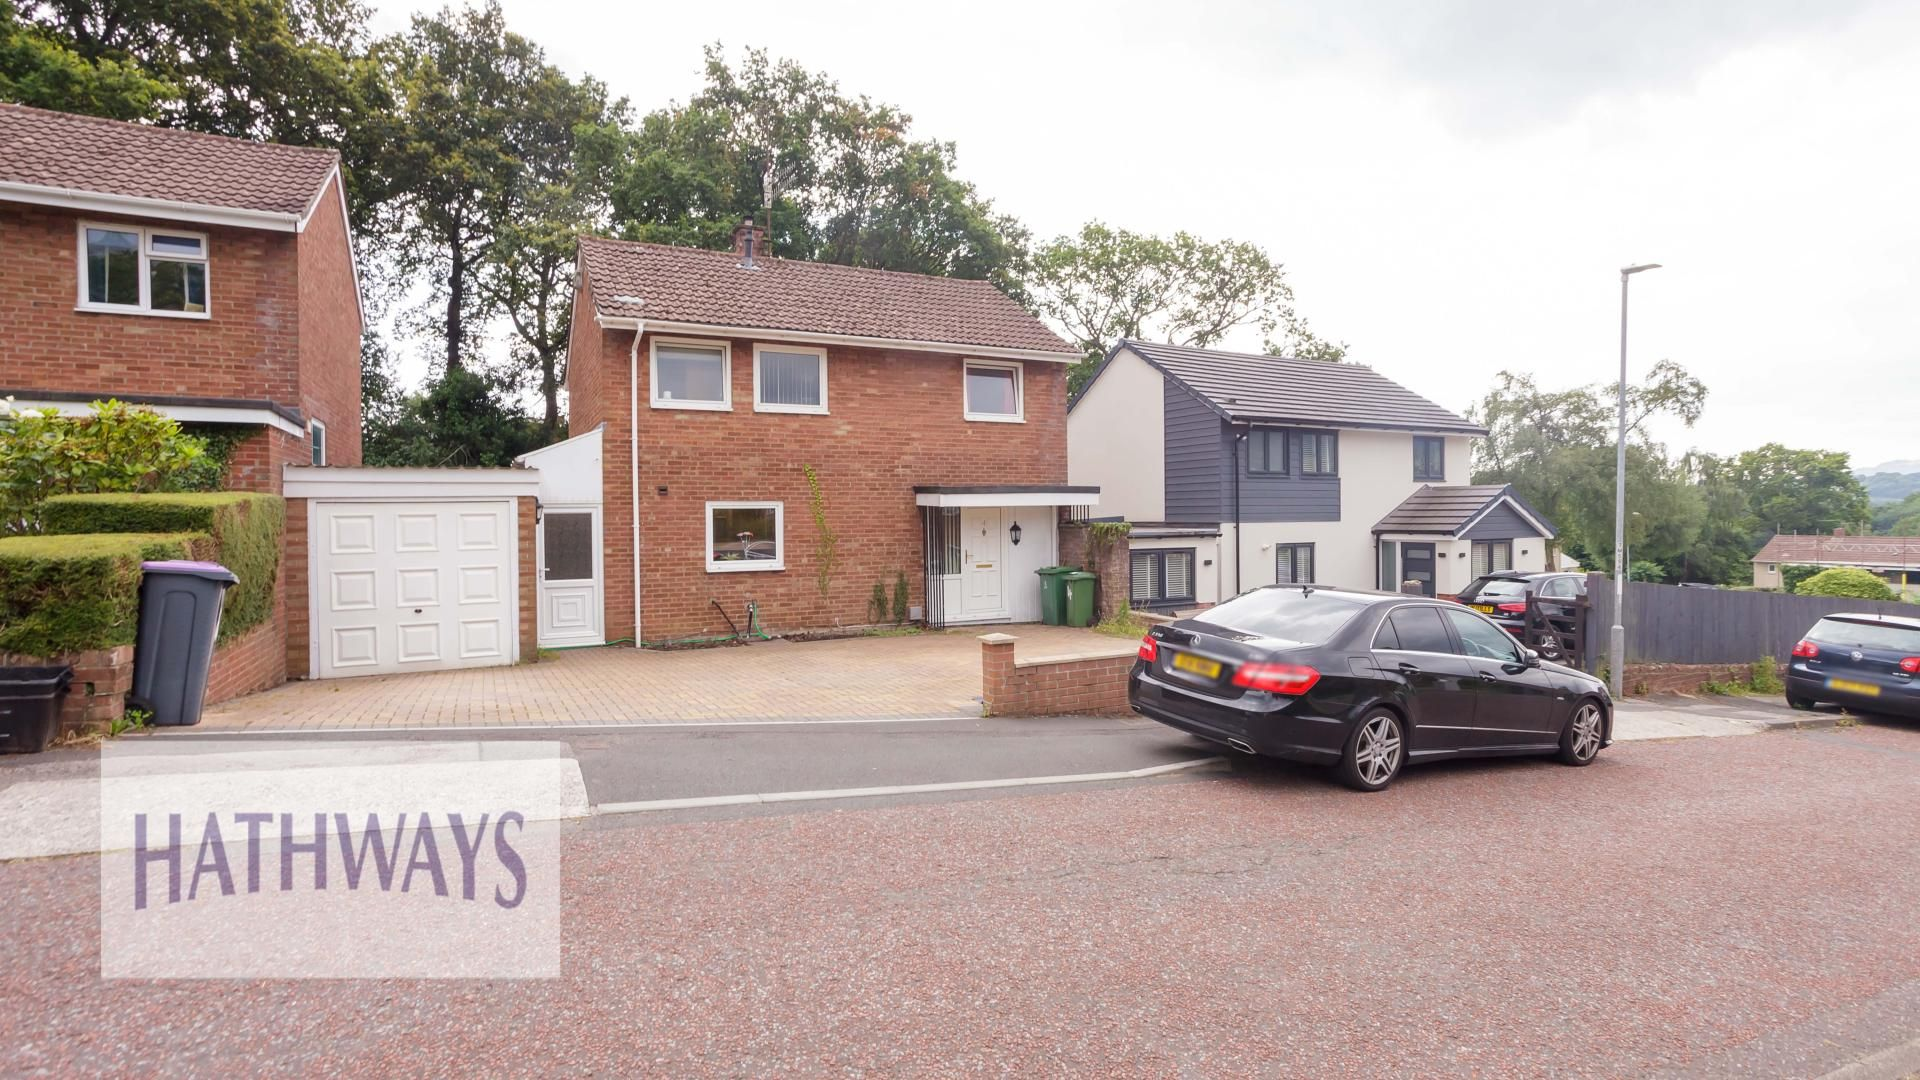 3 bed house for sale in Garw Wood Drive, NP44